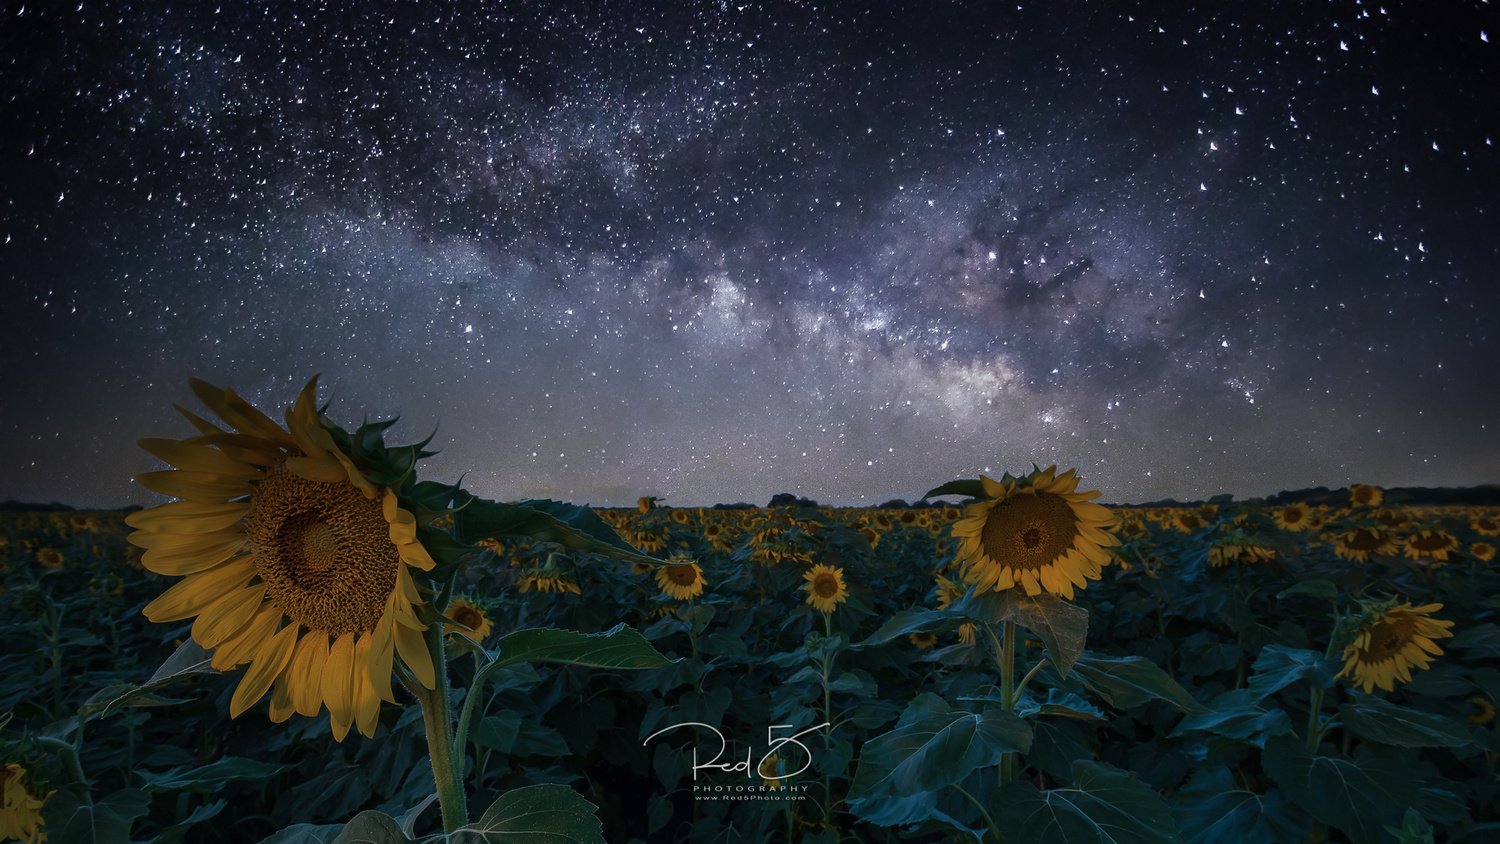 Sunflowers at Night by Jason Squyres